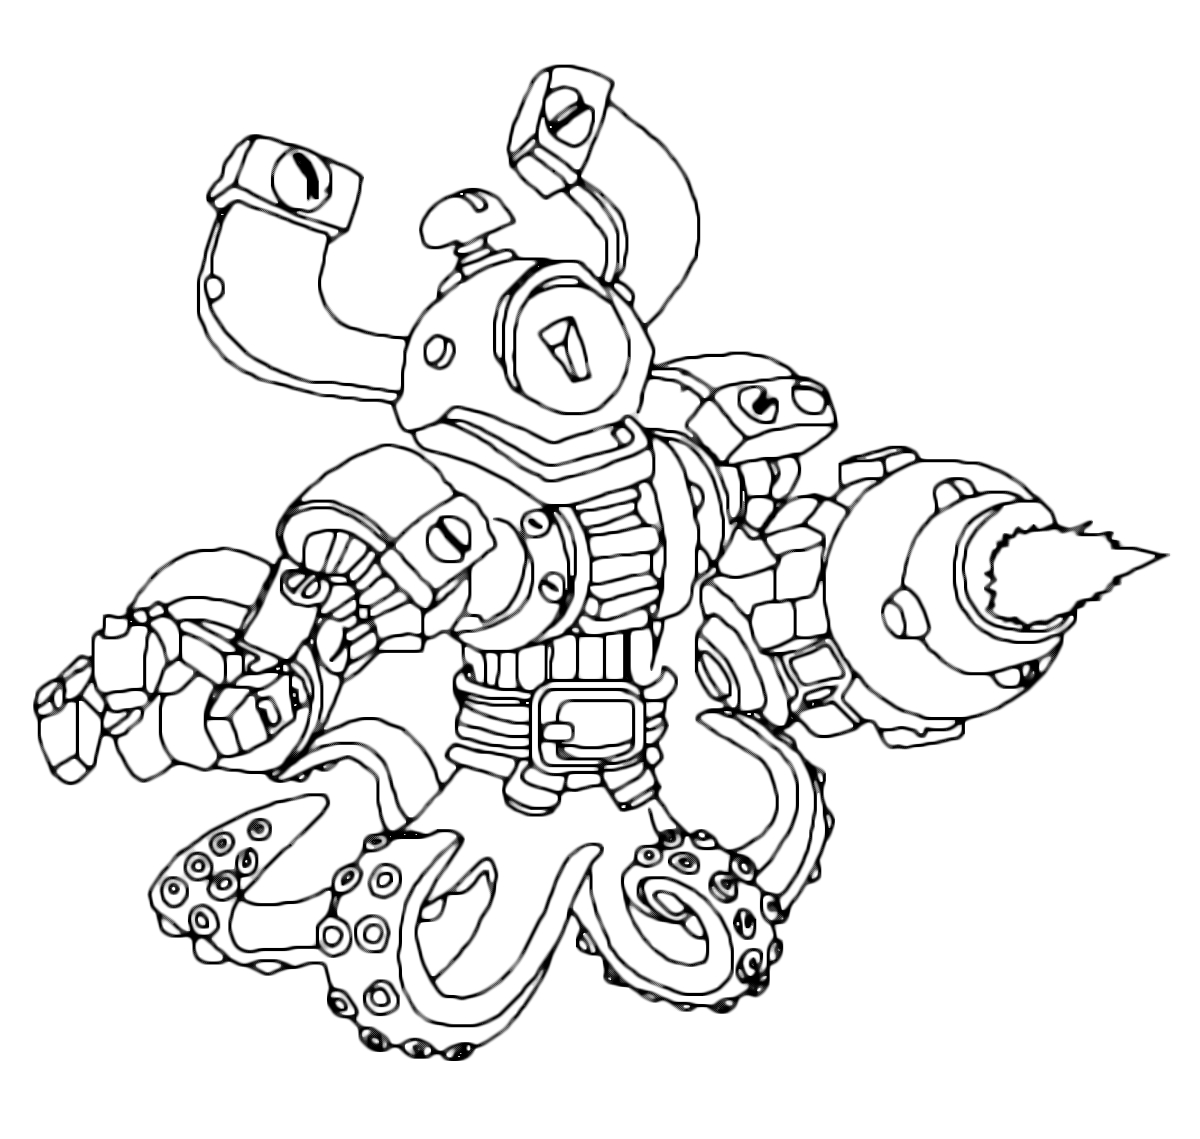 skylanders imaginators coloring pages - swap force magna buckler con le gambe da piovra